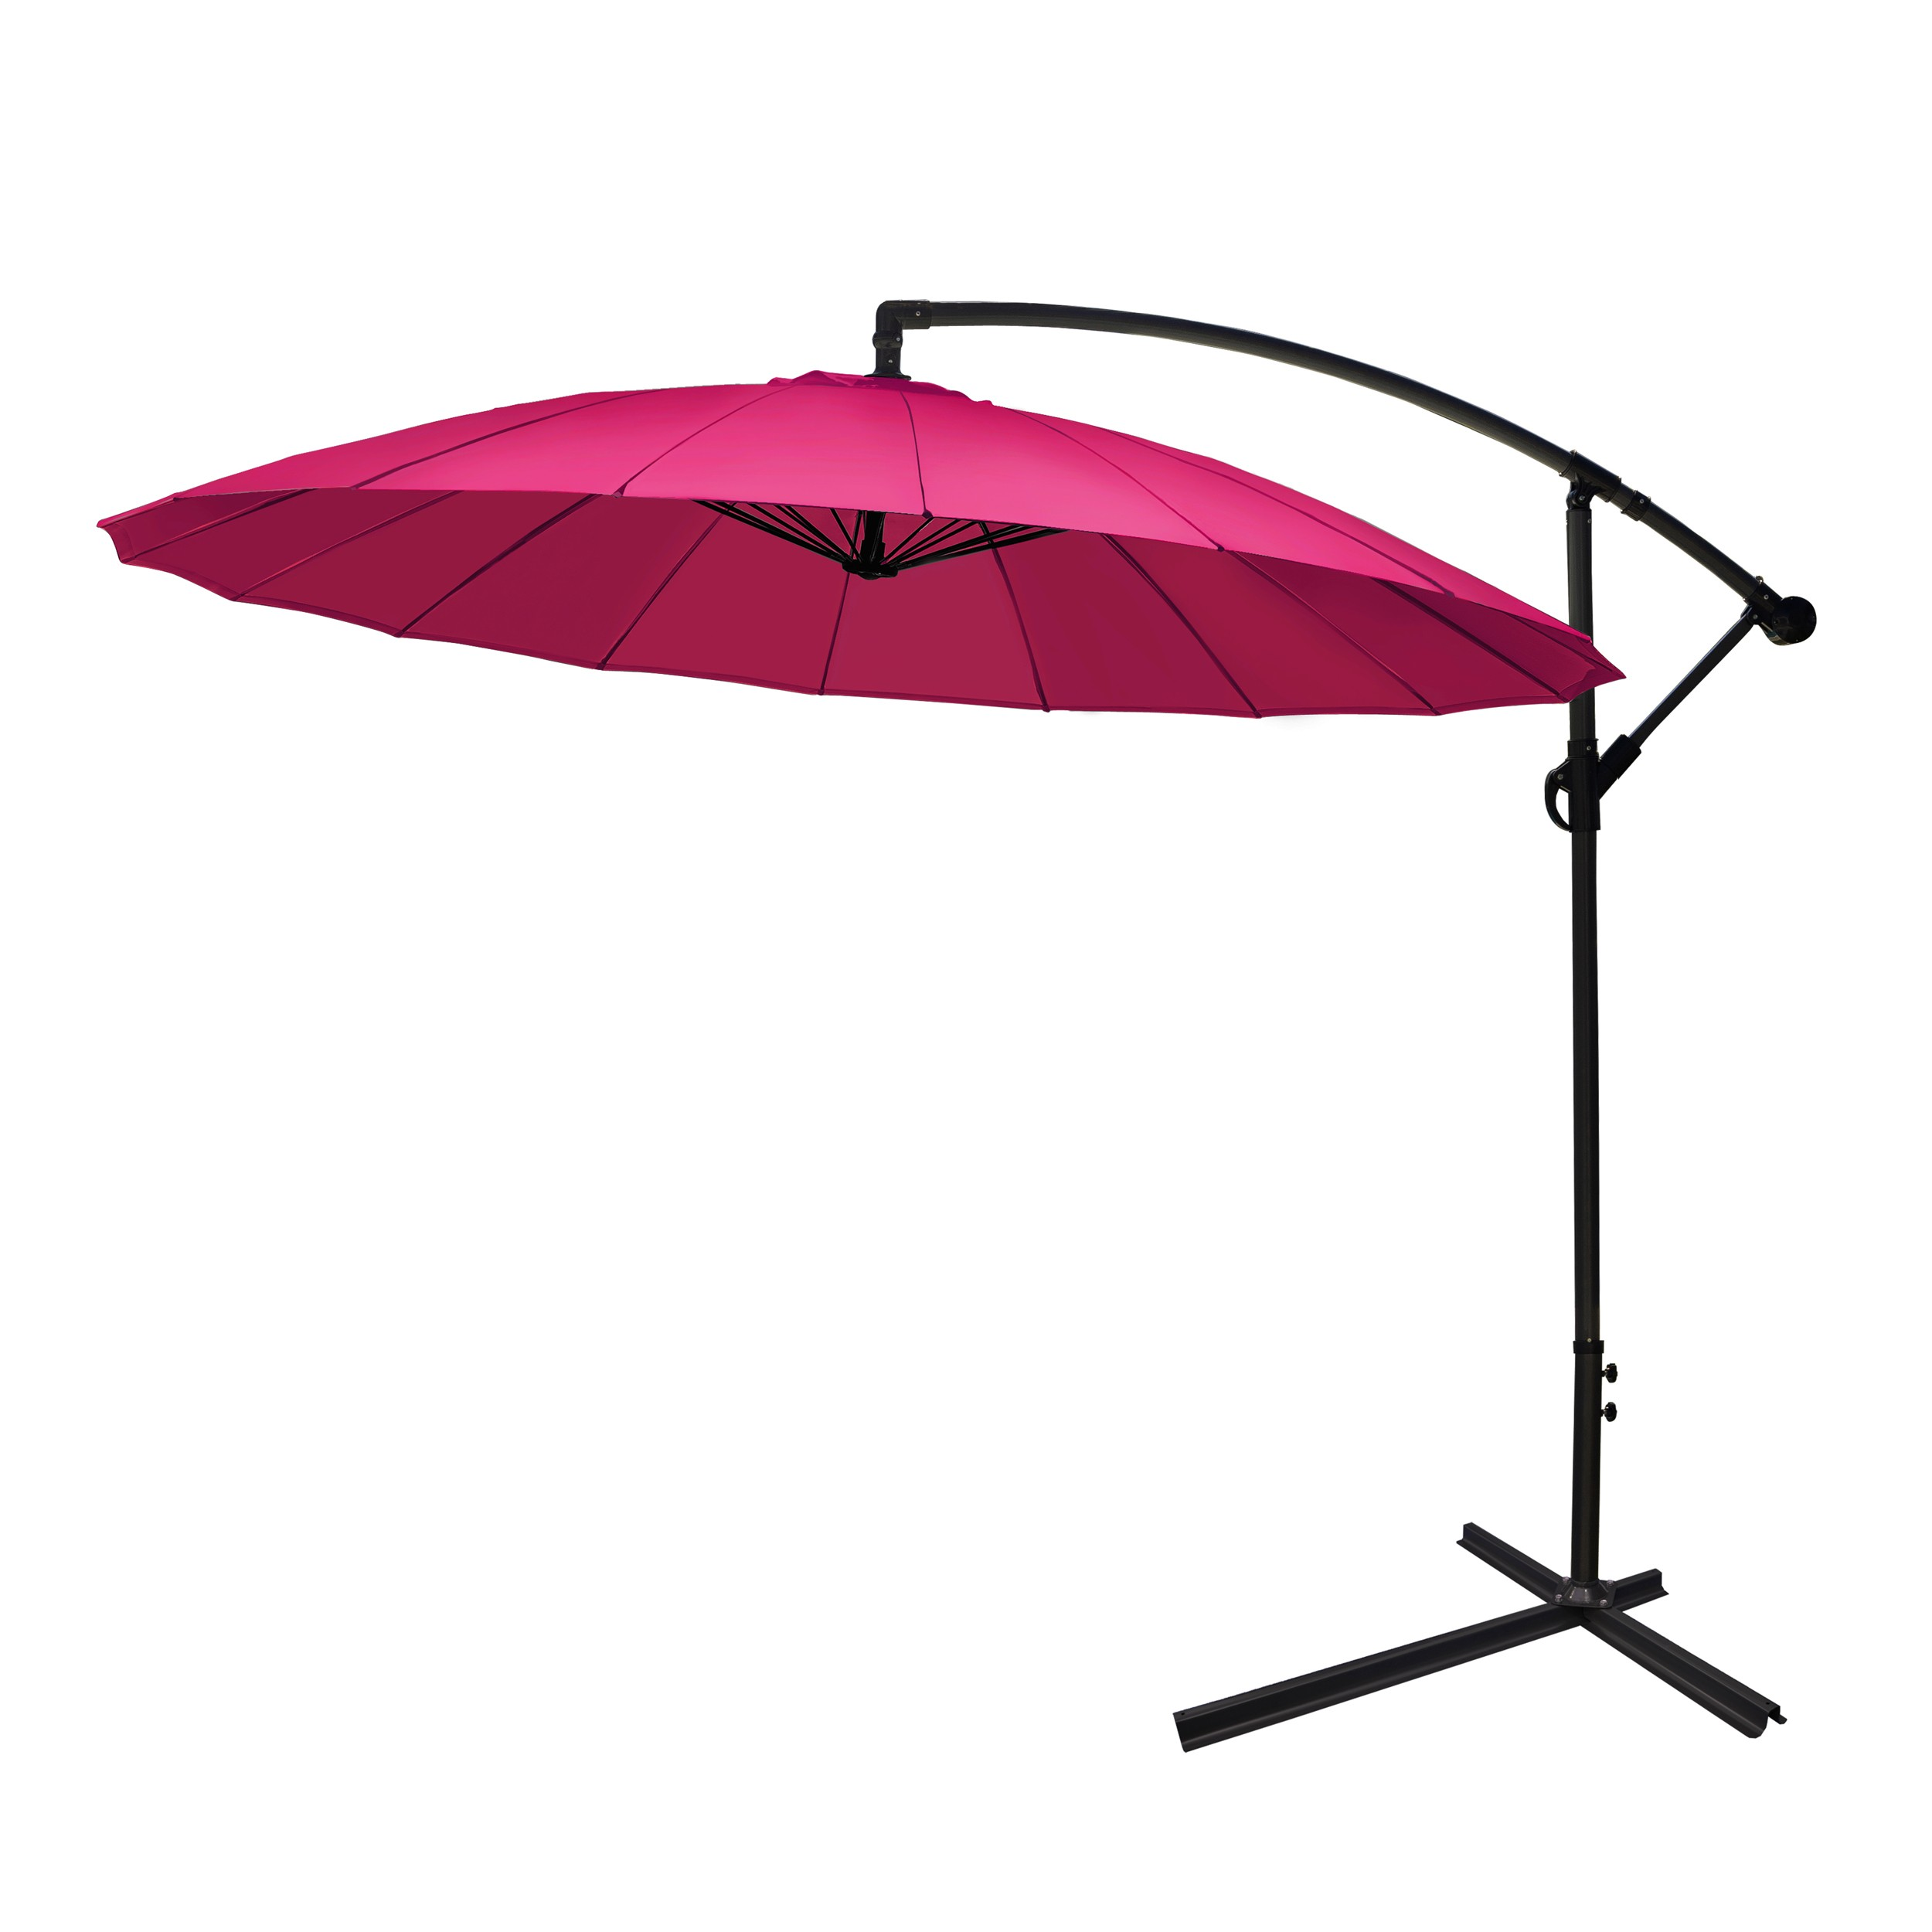 parasol d port ibiza framboise restez l 39 ombre avec nos parasols d port s ibiza framboise. Black Bedroom Furniture Sets. Home Design Ideas